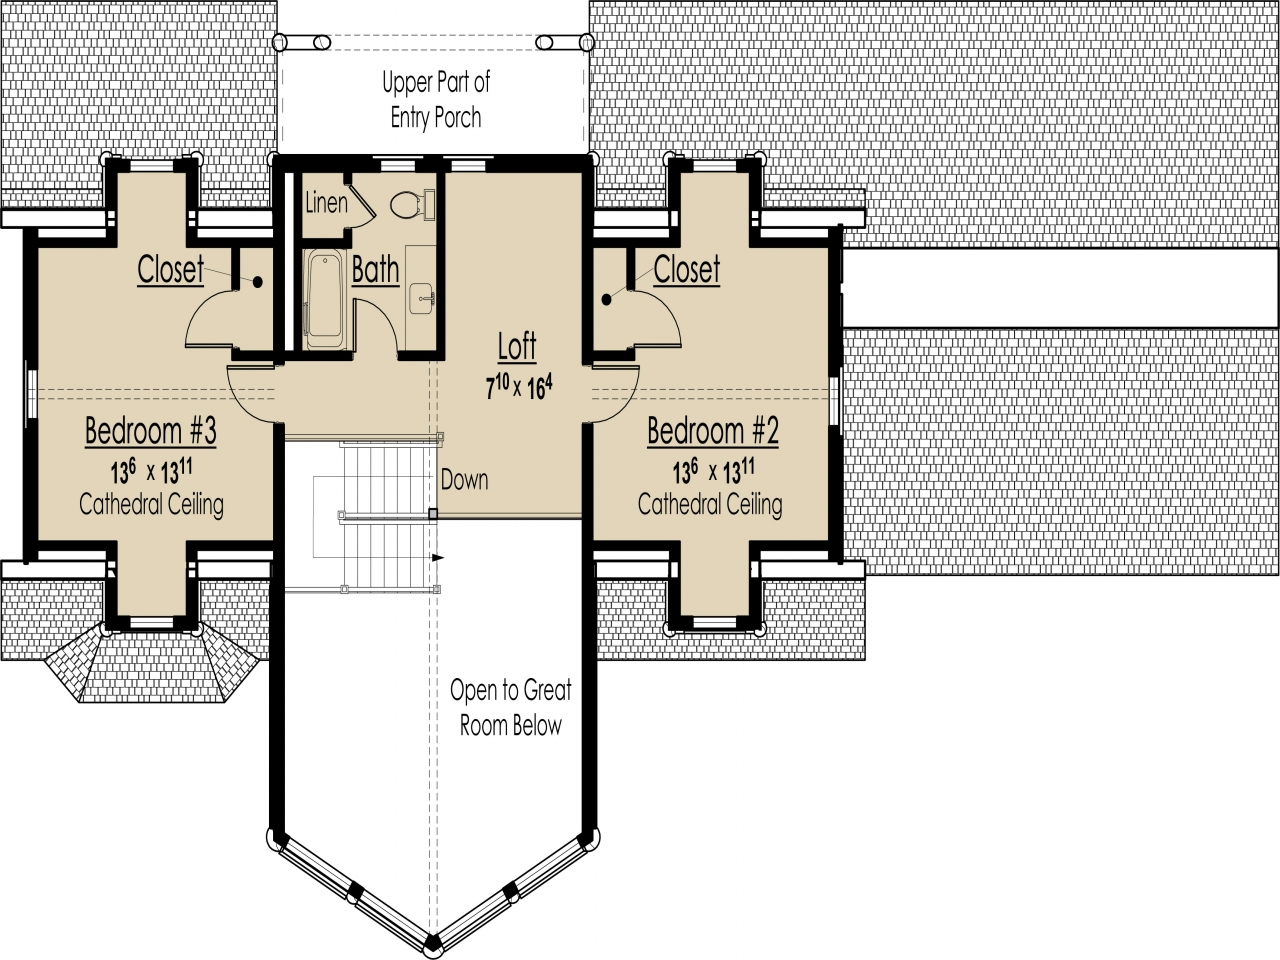 Energy efficient home design features energy efficient for Efficient house plans small